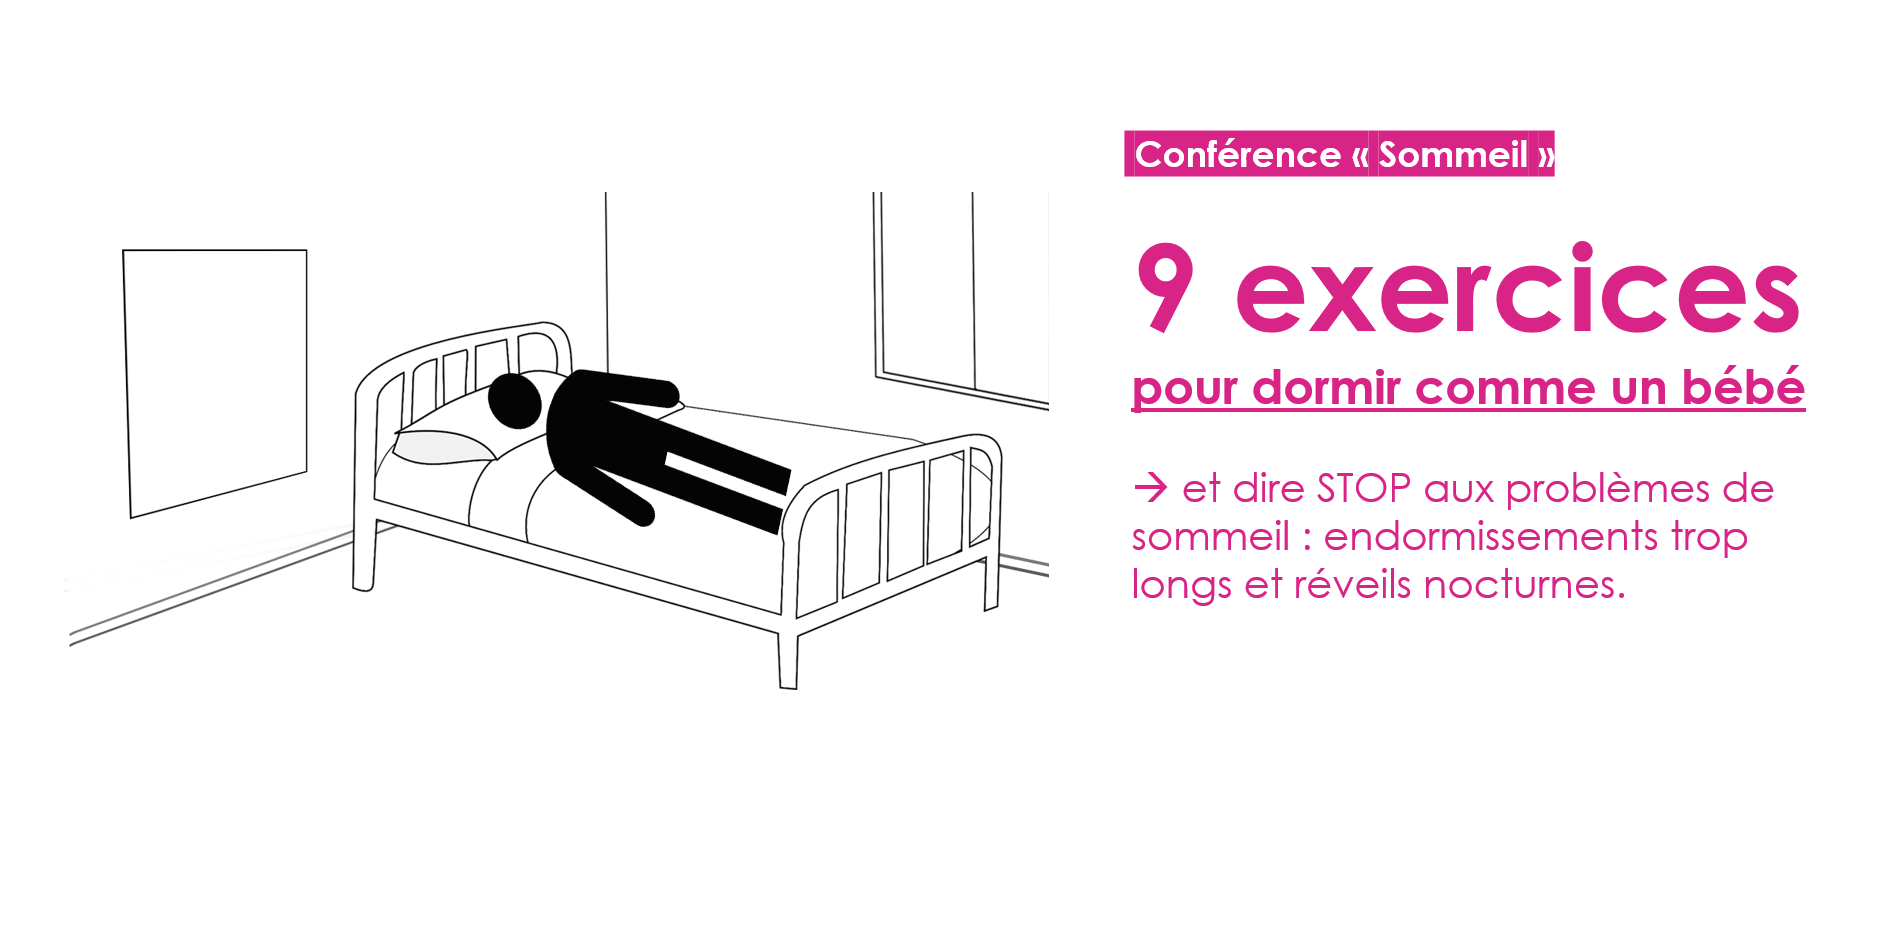 Conference sommeil.png